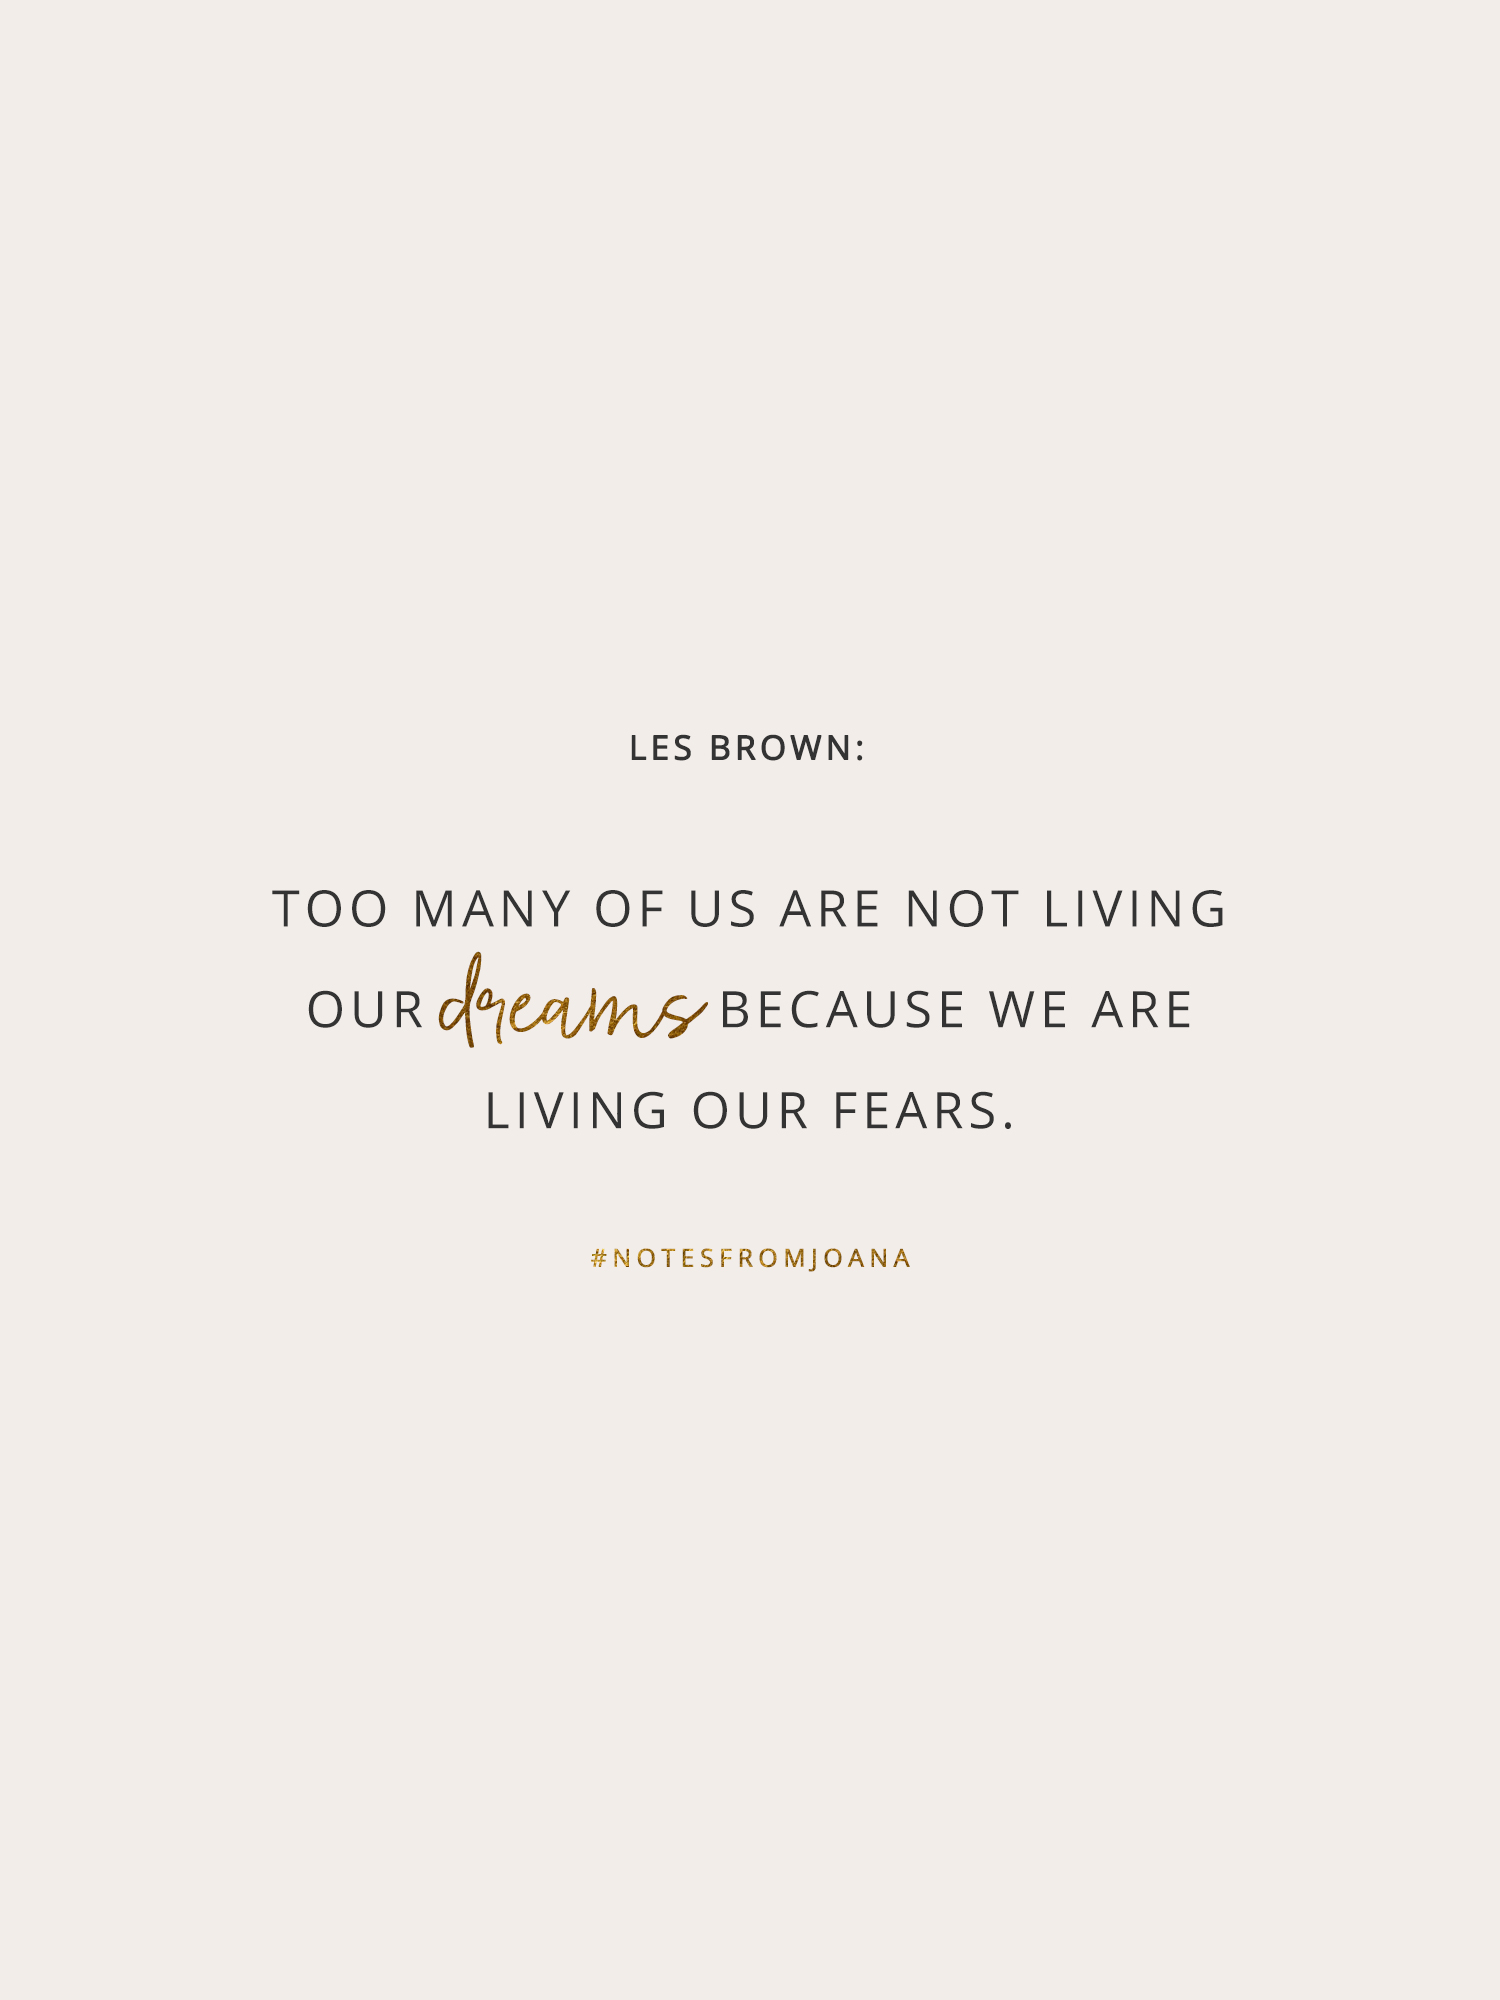 20 Inspirational Quotes To Help You Become Your Best Self. Too many of us are not living our dreams because we are living our fears. LES BROWN // Notes from Joana